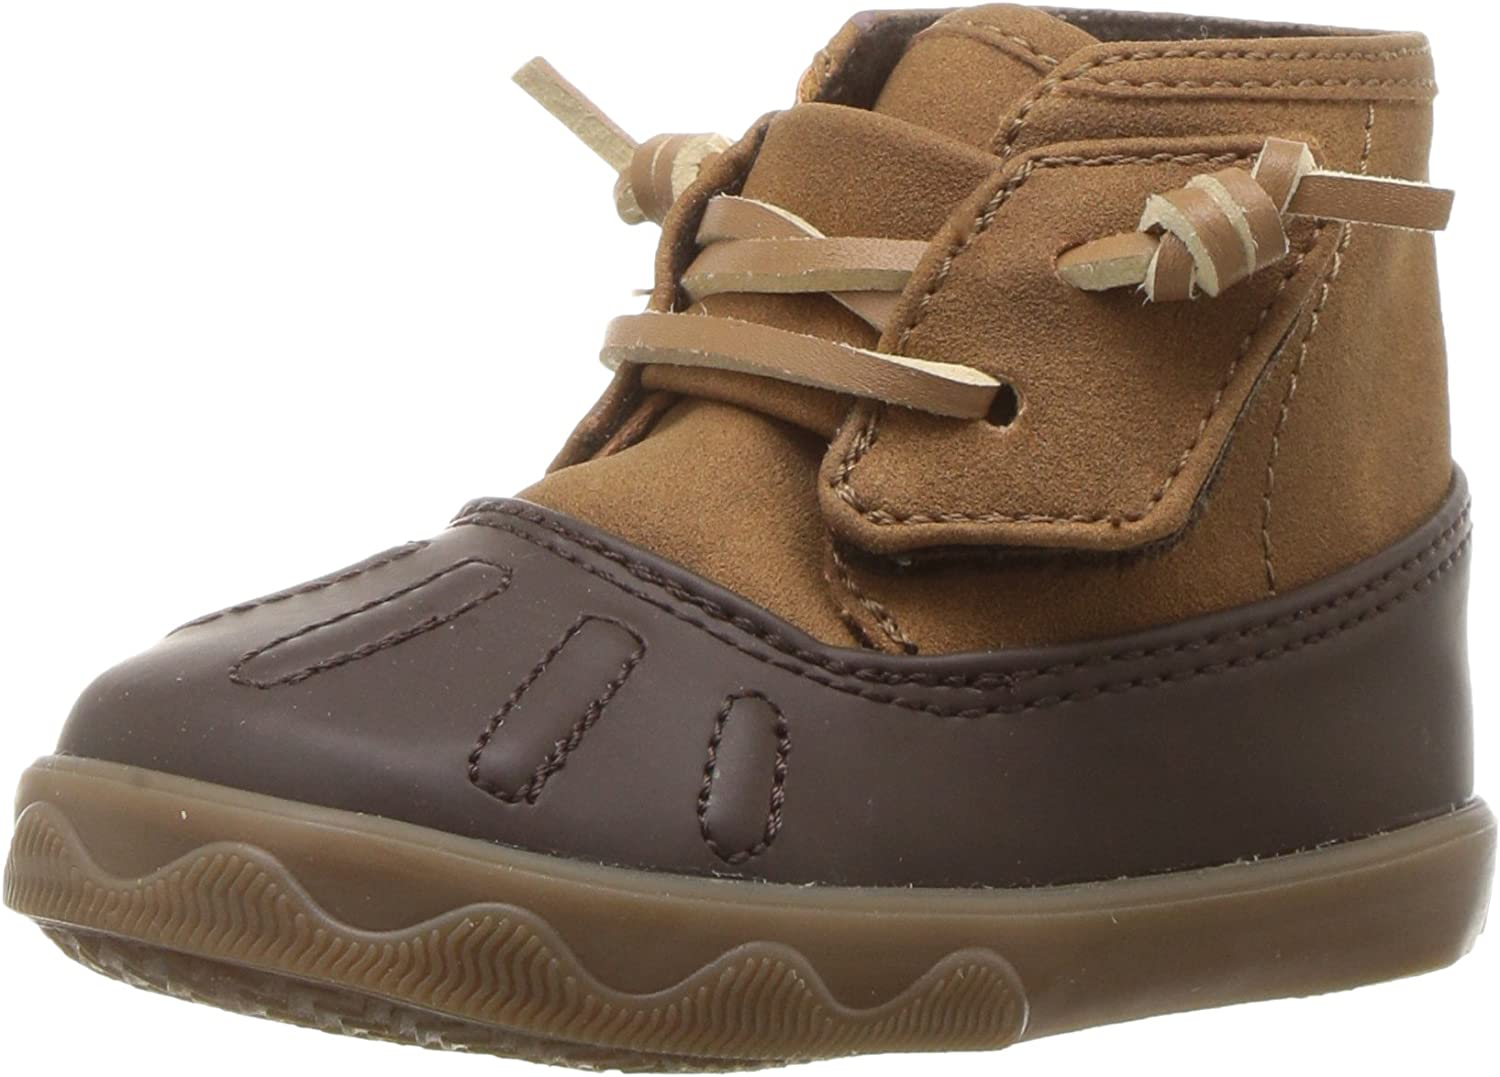 Infant//Toddler Sperry Icestorm Crib Ankle Boot